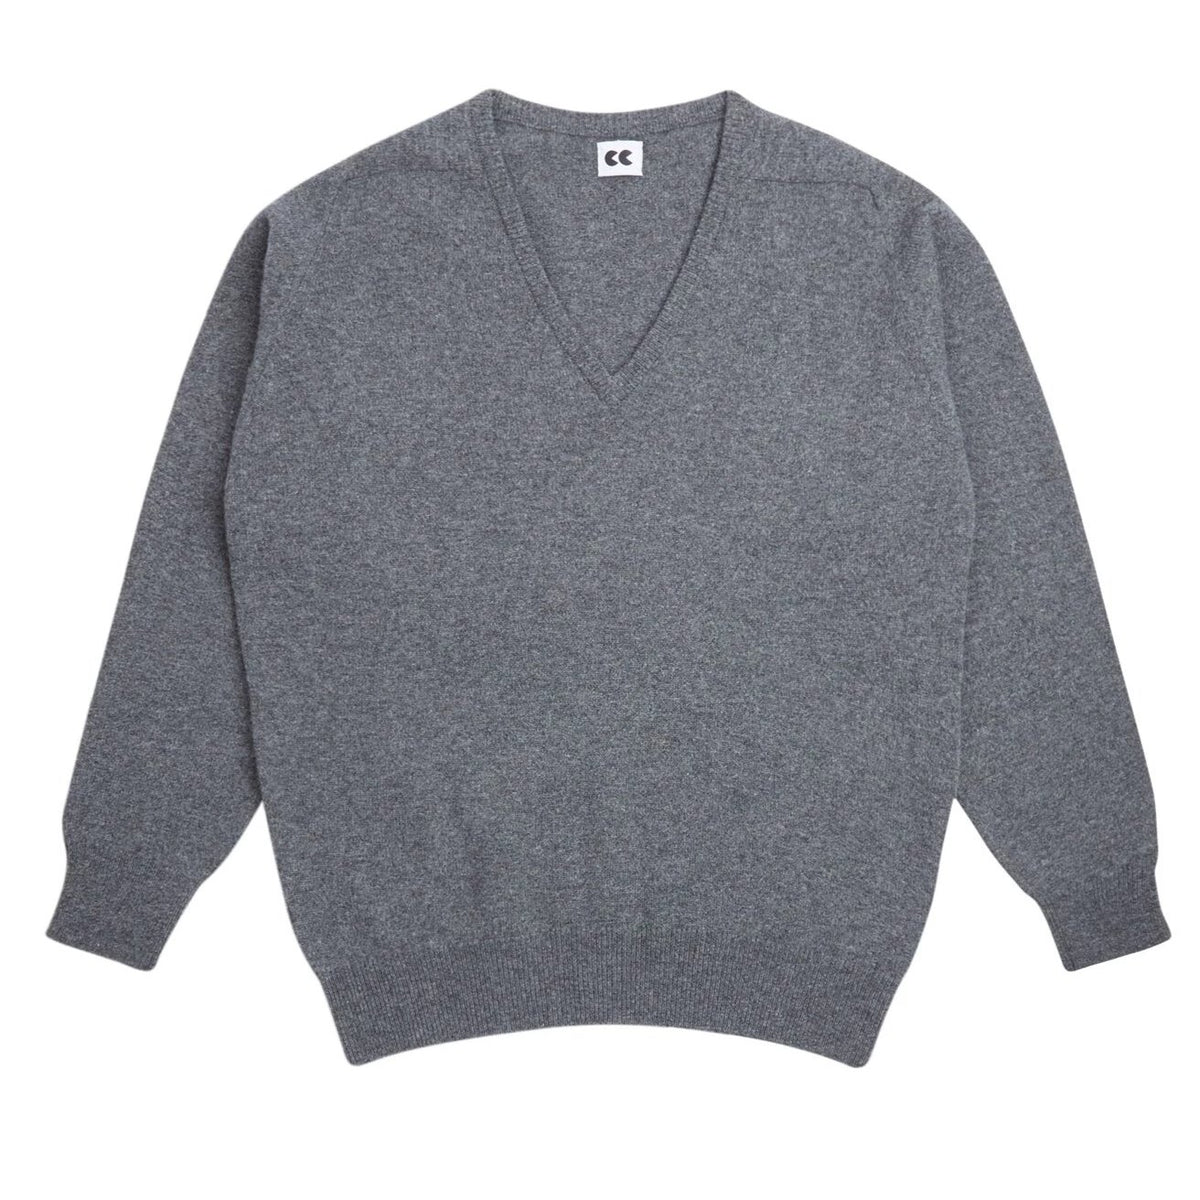 Lambswool V Neck Jumper Grey - Community Clothing